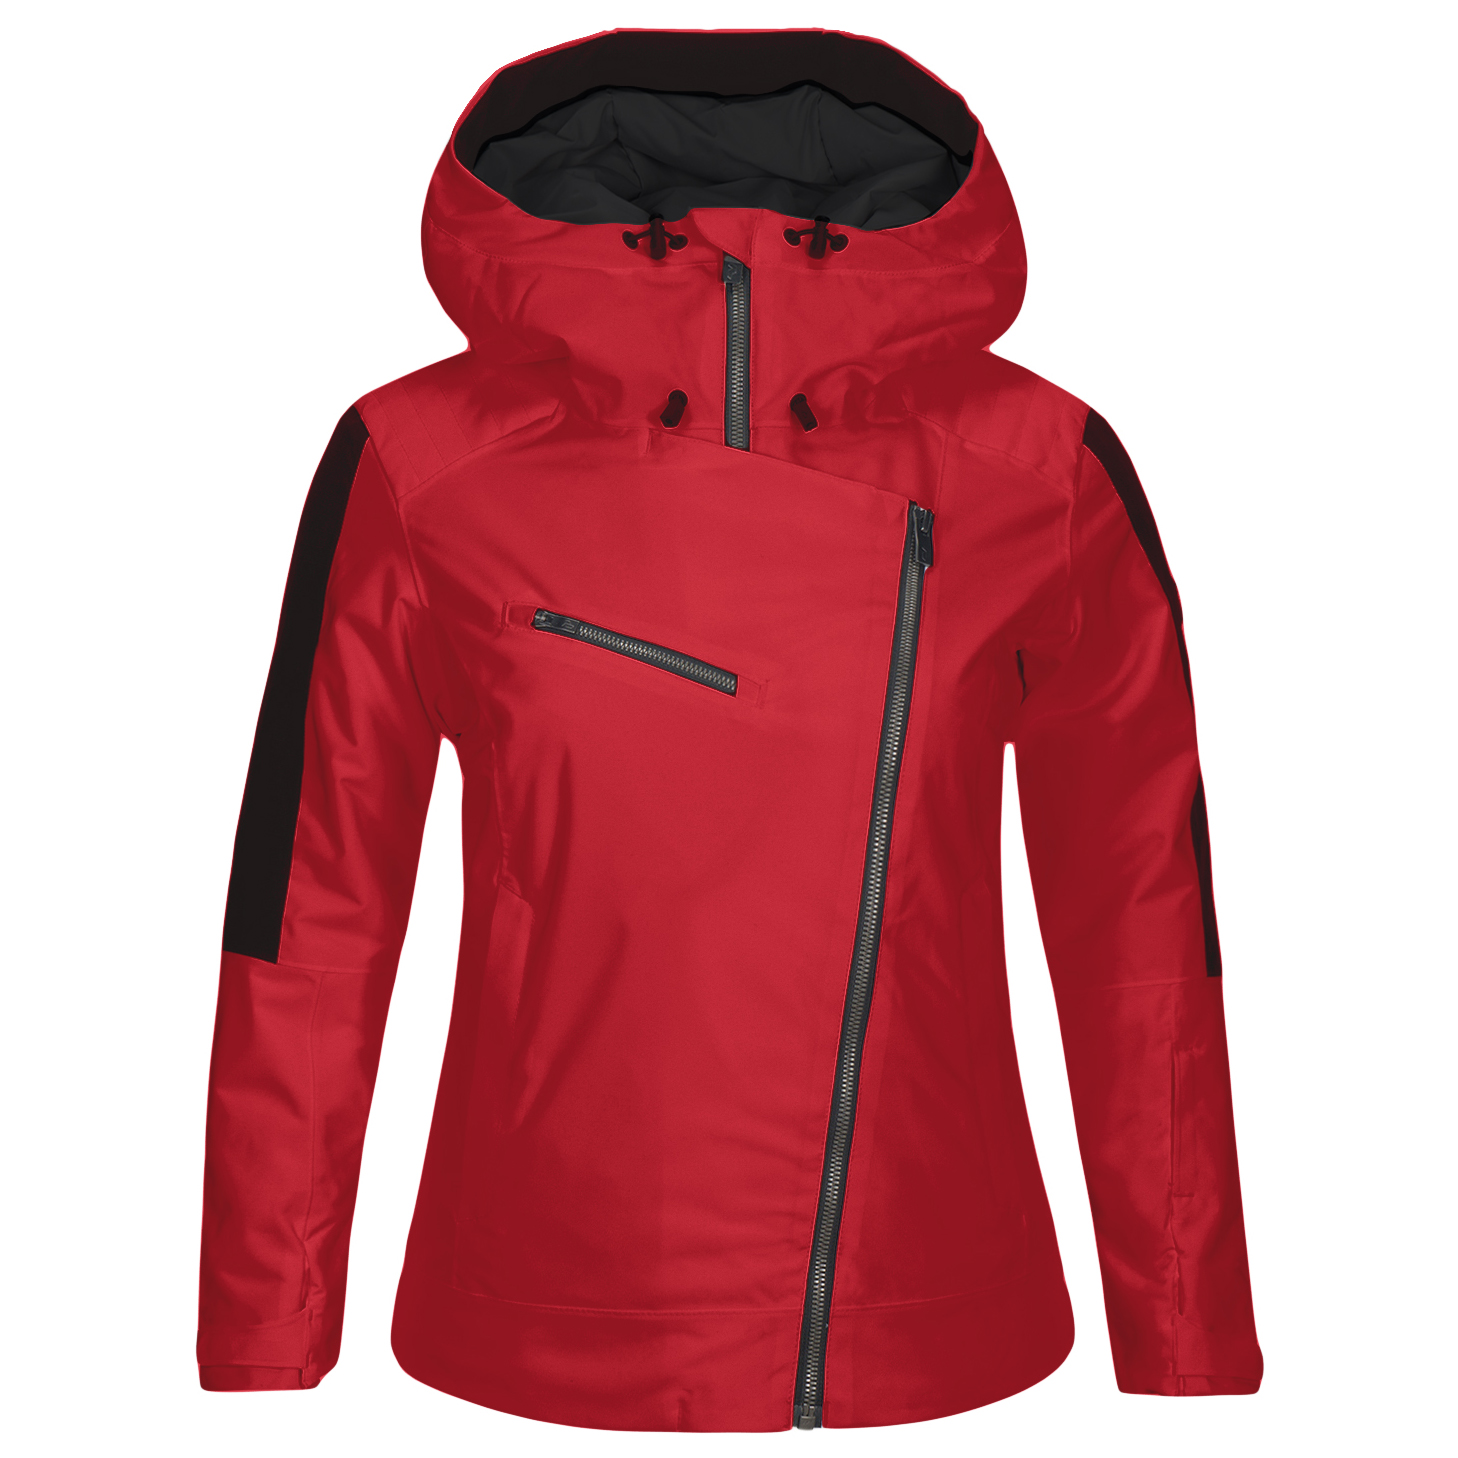 Peak Performance Clusaz Jacket Skijacke Damen online